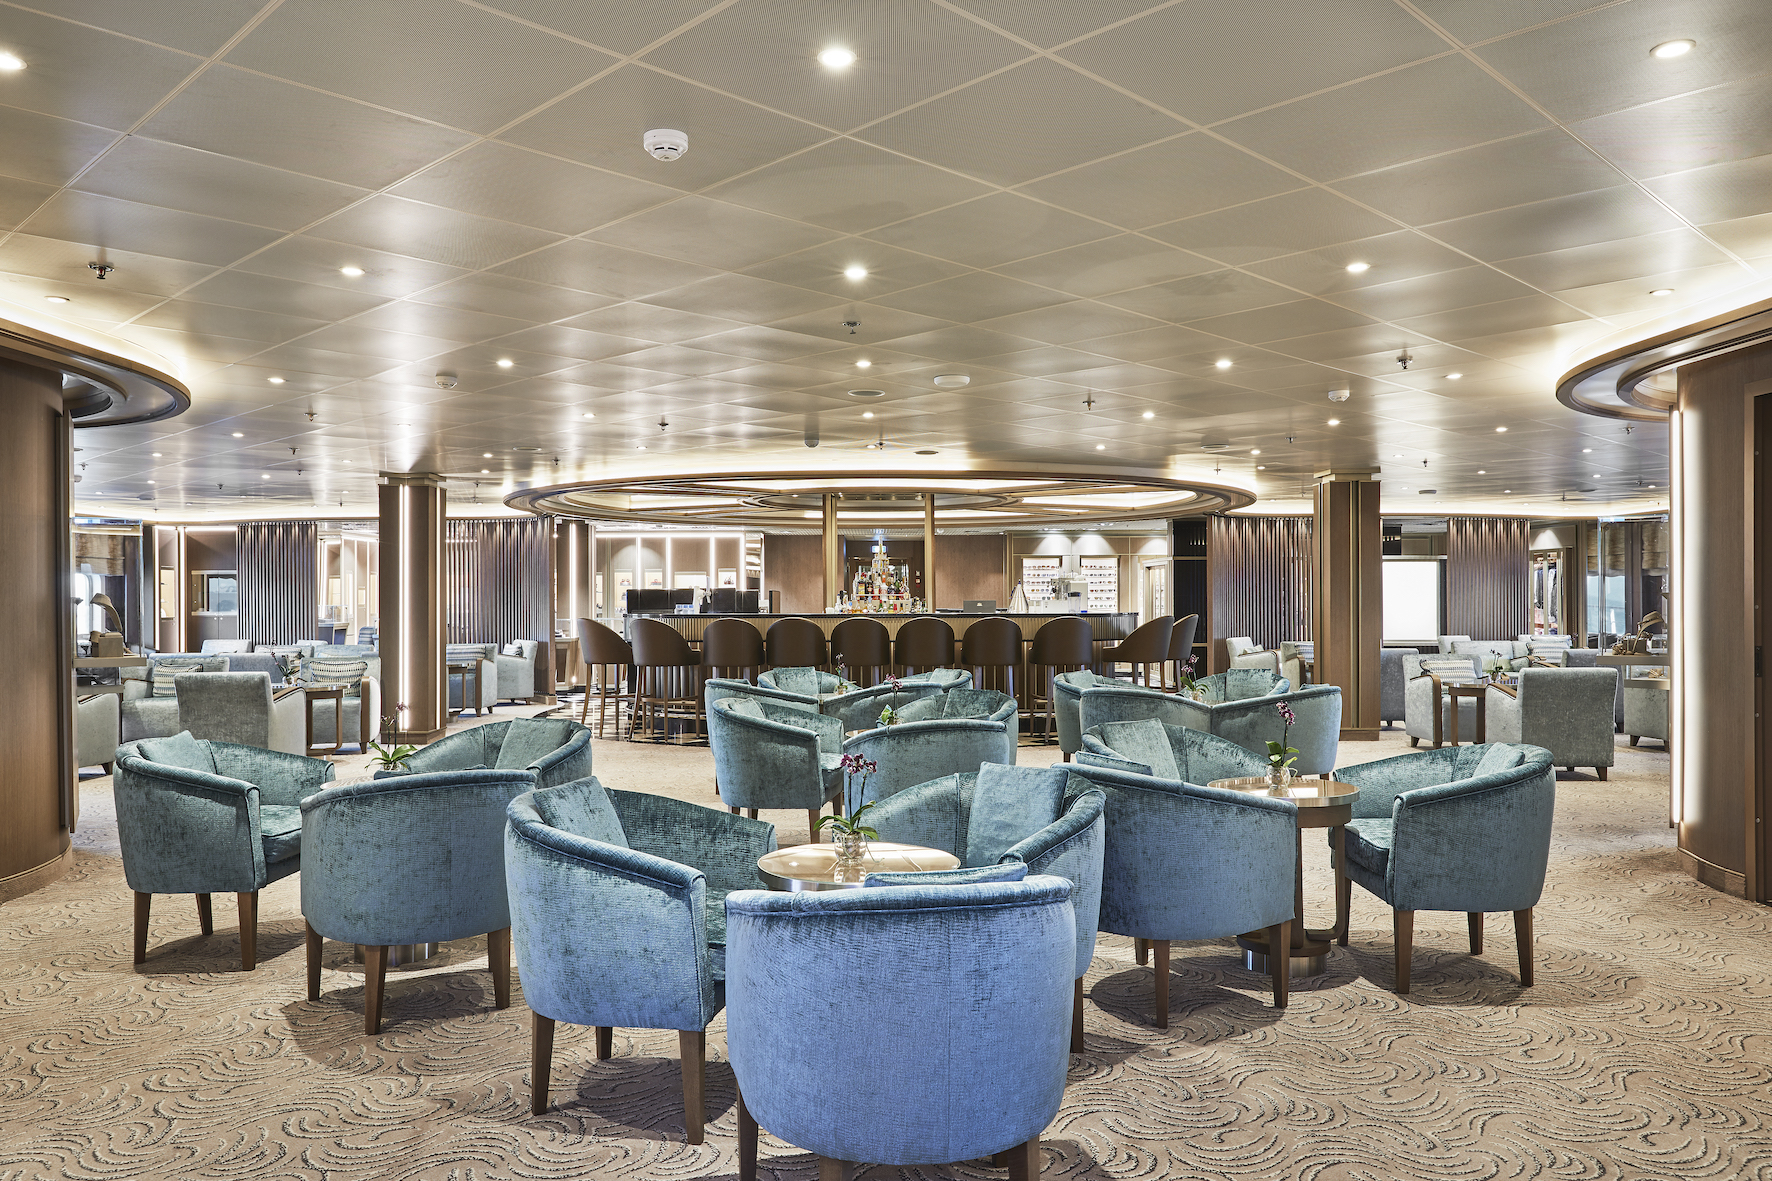 Silversea Silver Shadow cruise ship gets a makeover